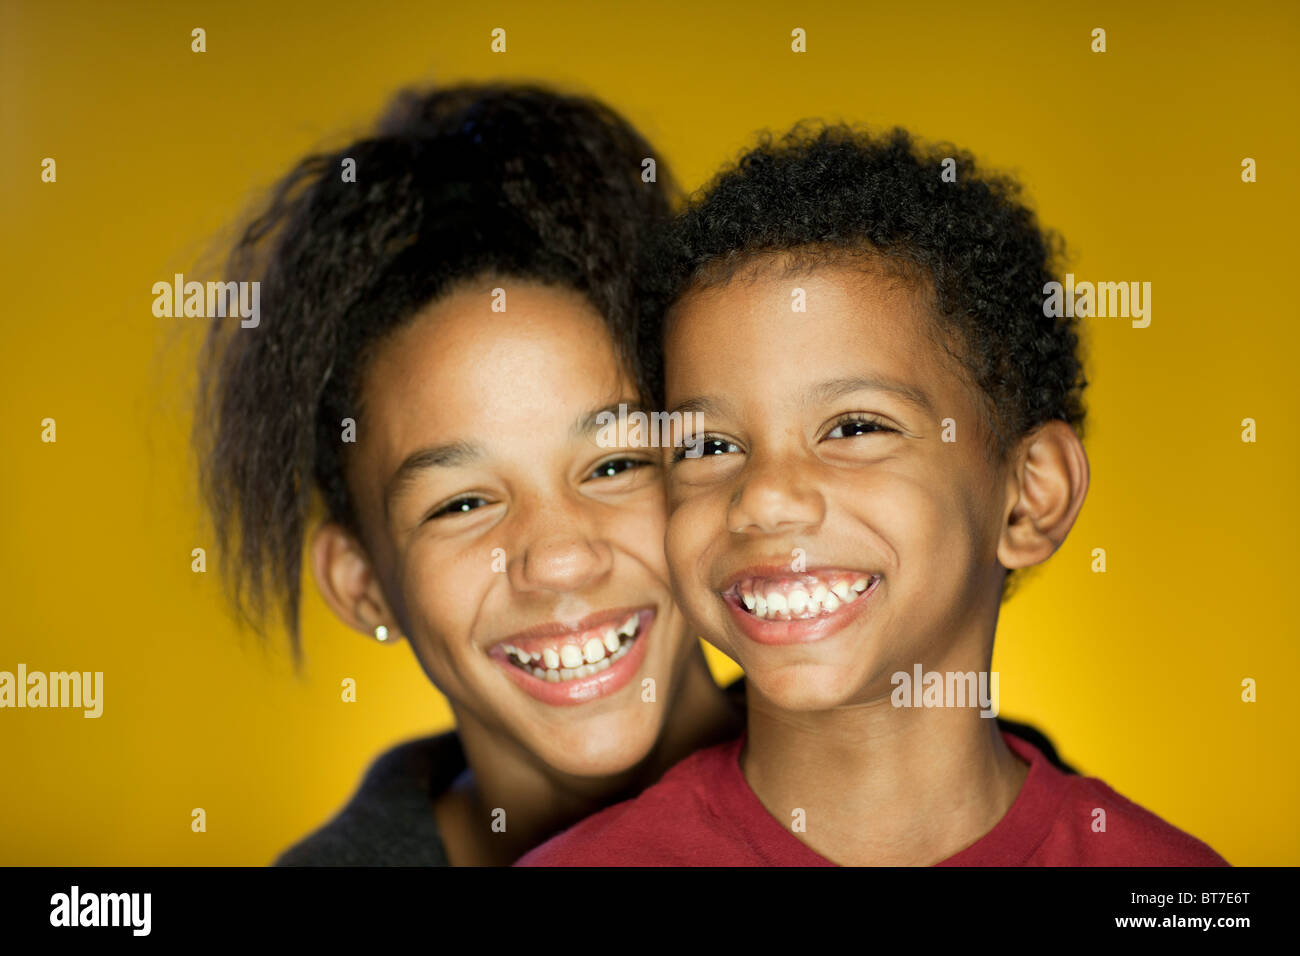 Portrait of Brother and Sister Smiling and having Fun - Stock Image